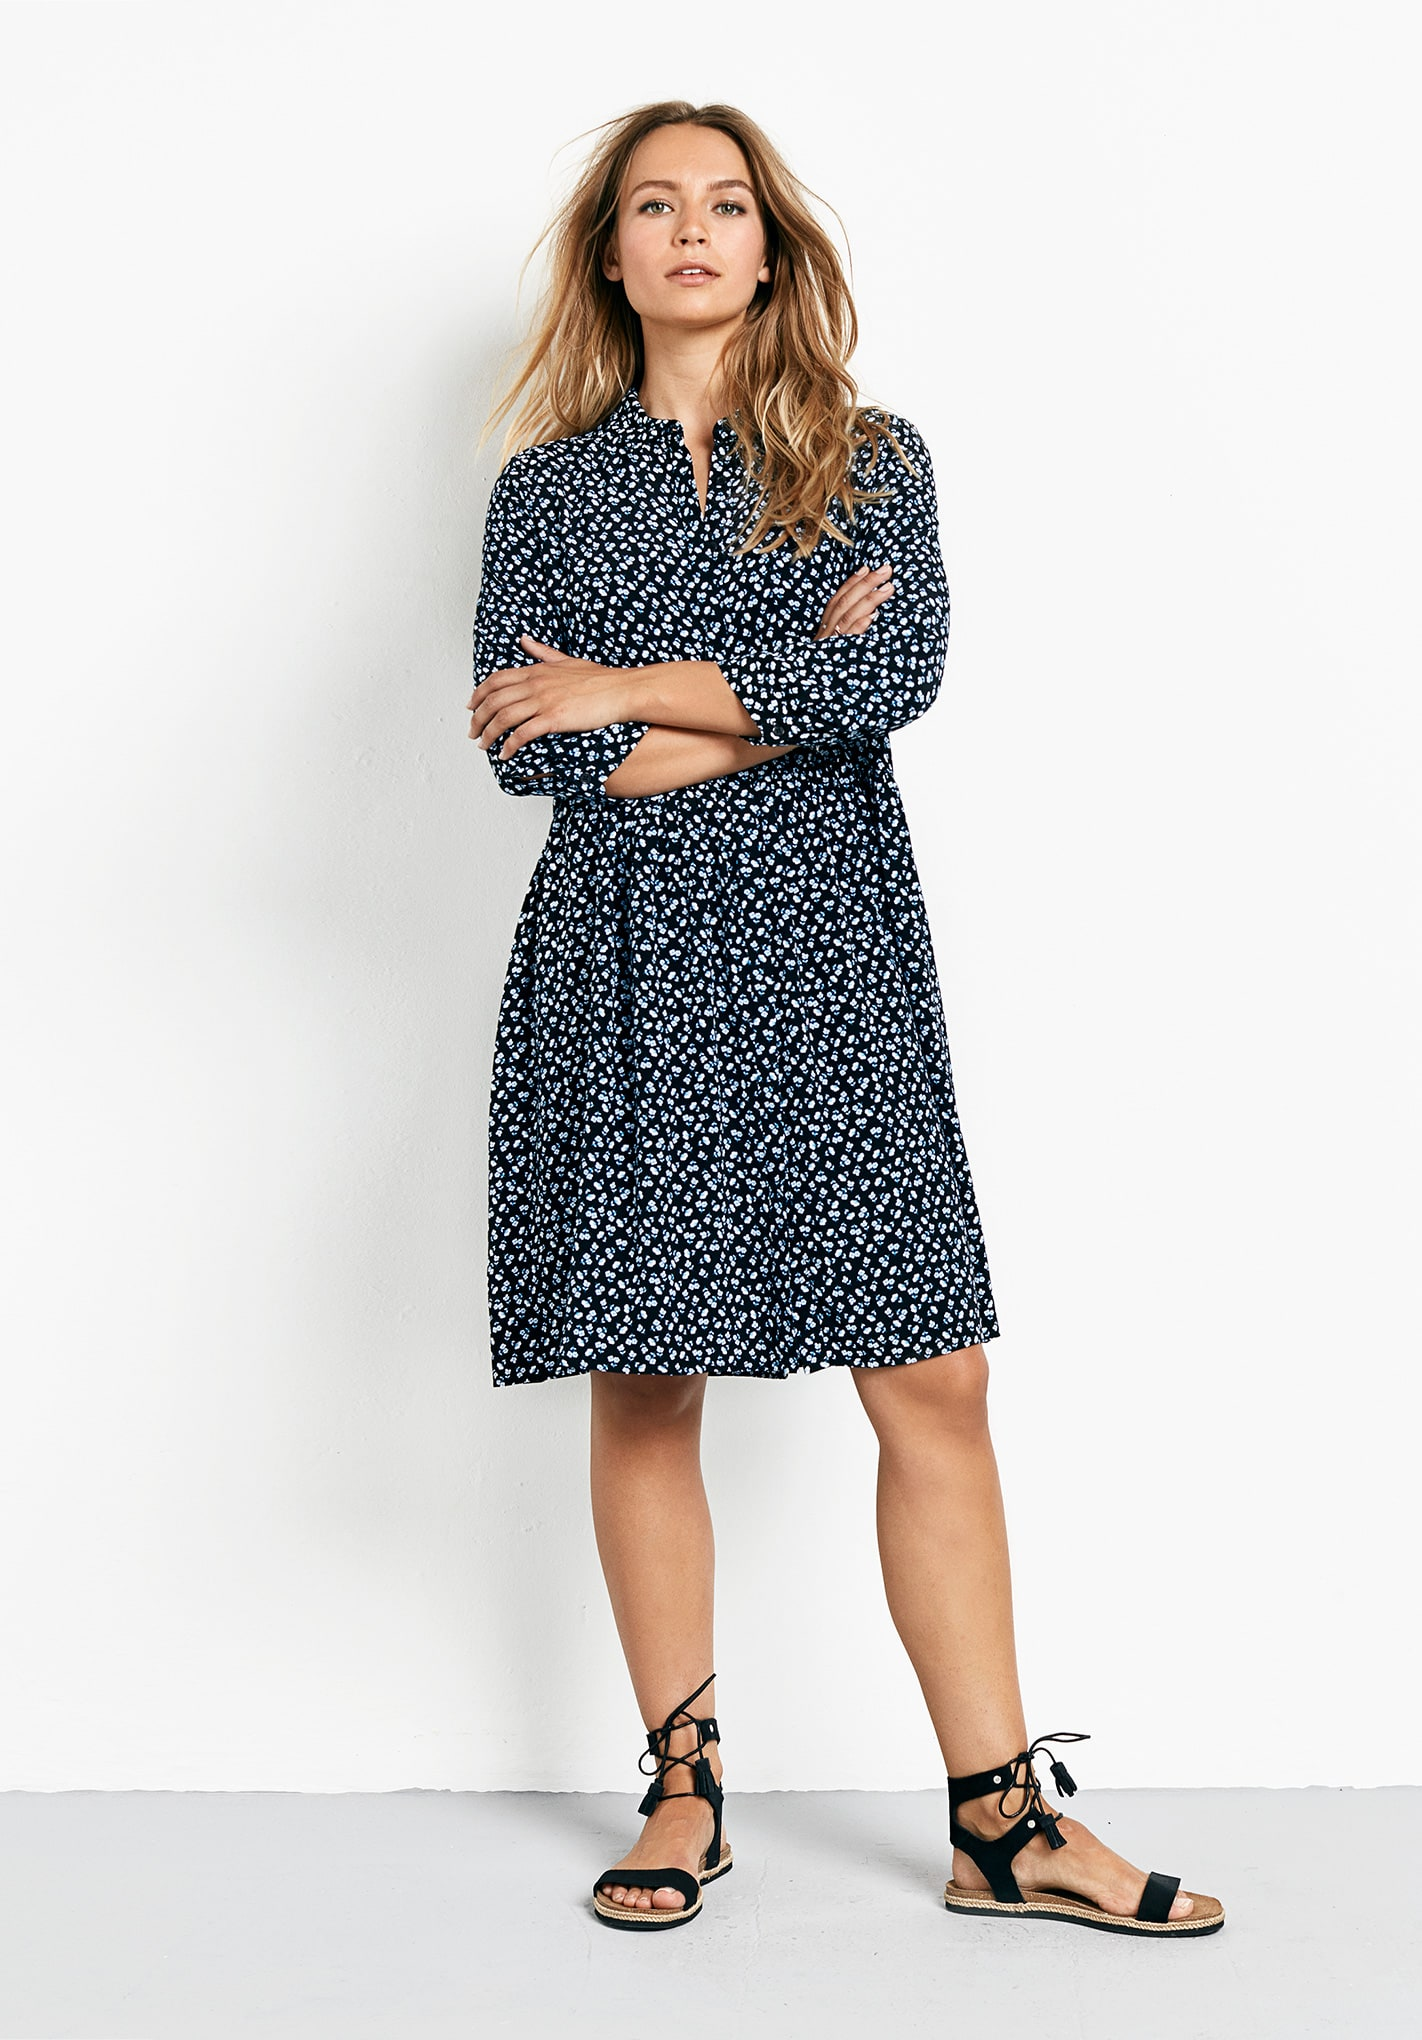 Size 14 Dresses - Casual, Chic Daywear from hush from Hush